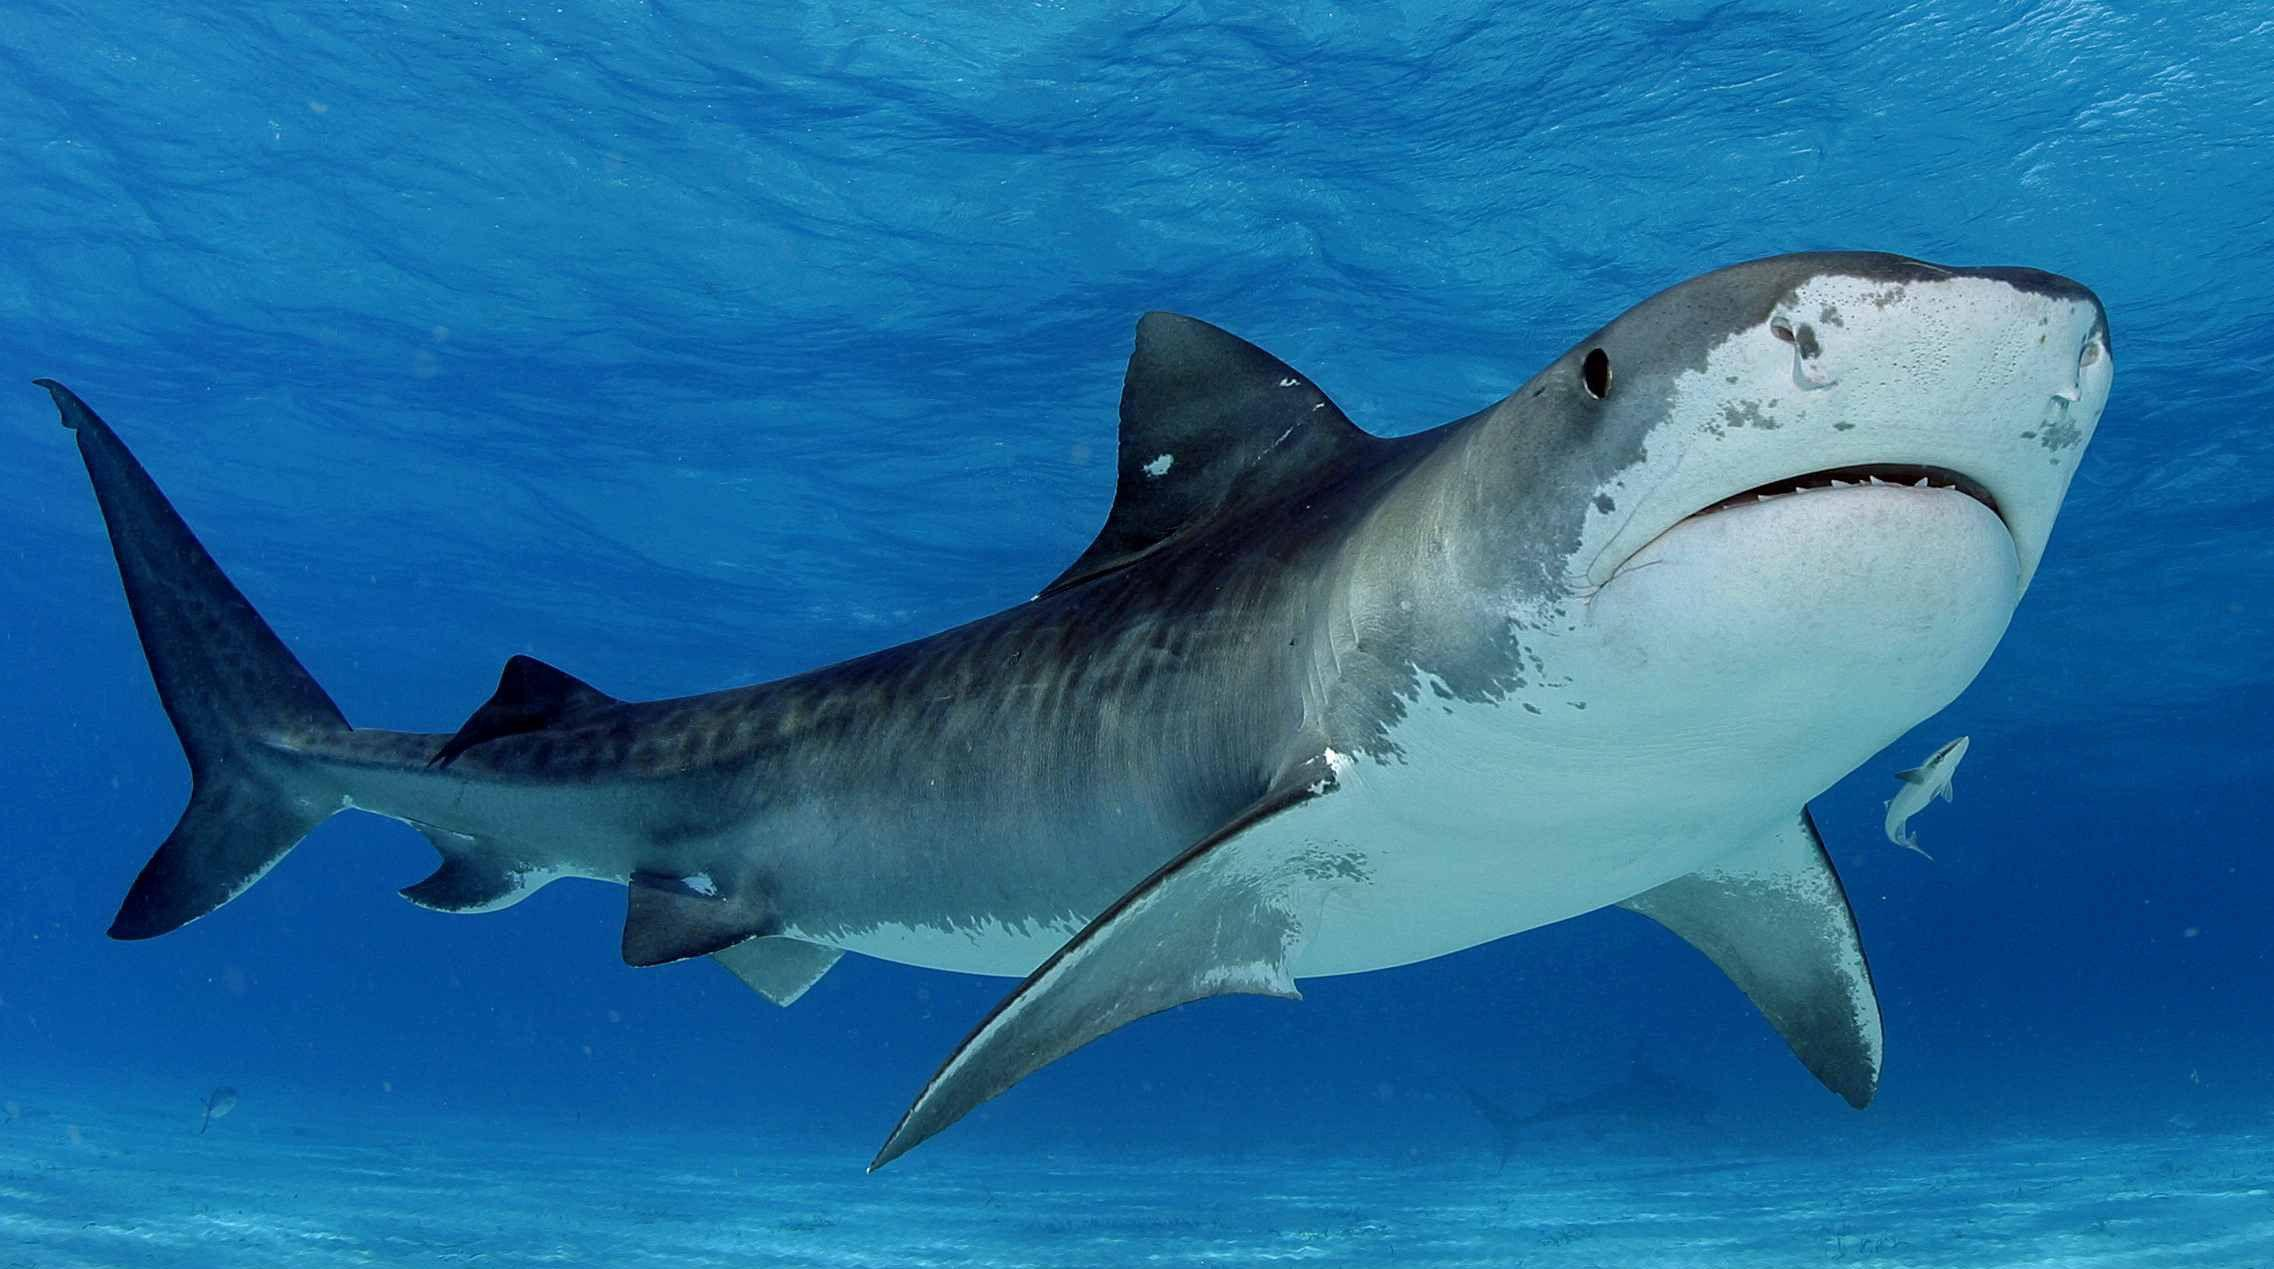 HD Wallpapers Source — Shark HD Wallpapers